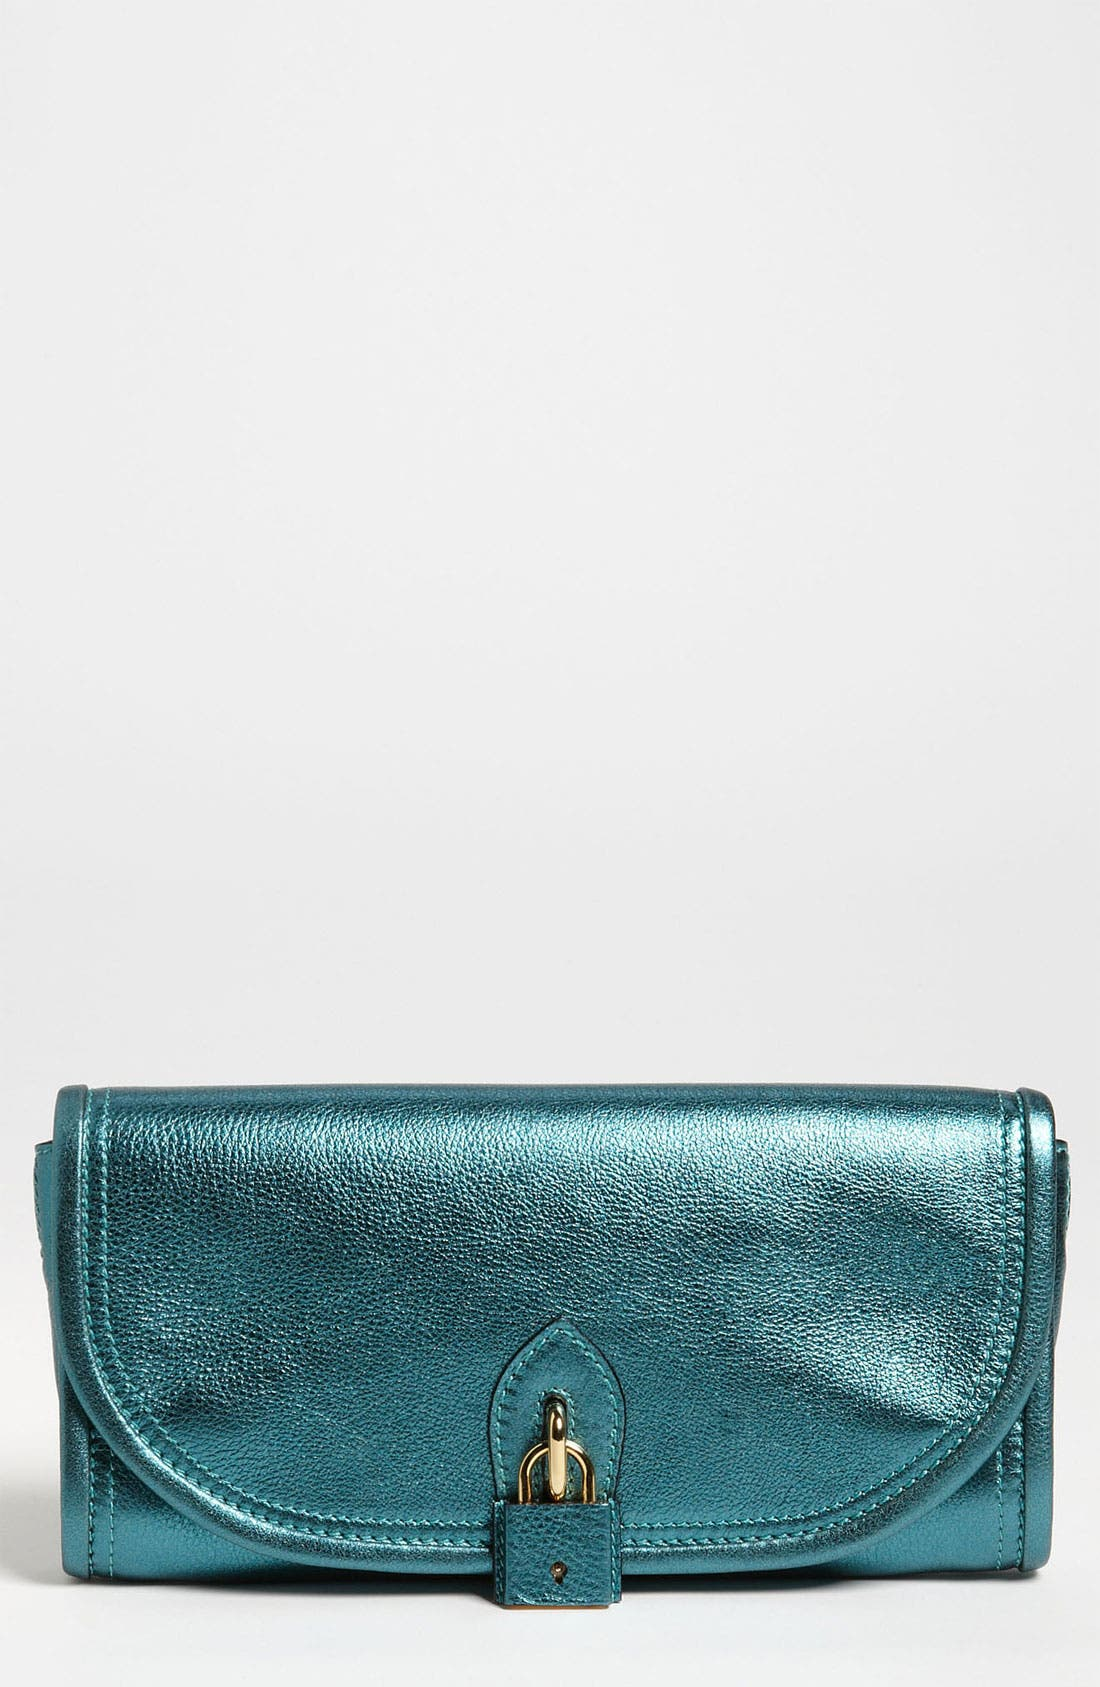 Main Image - Burberry 'Soft Grainy Metallic' Leather Clutch